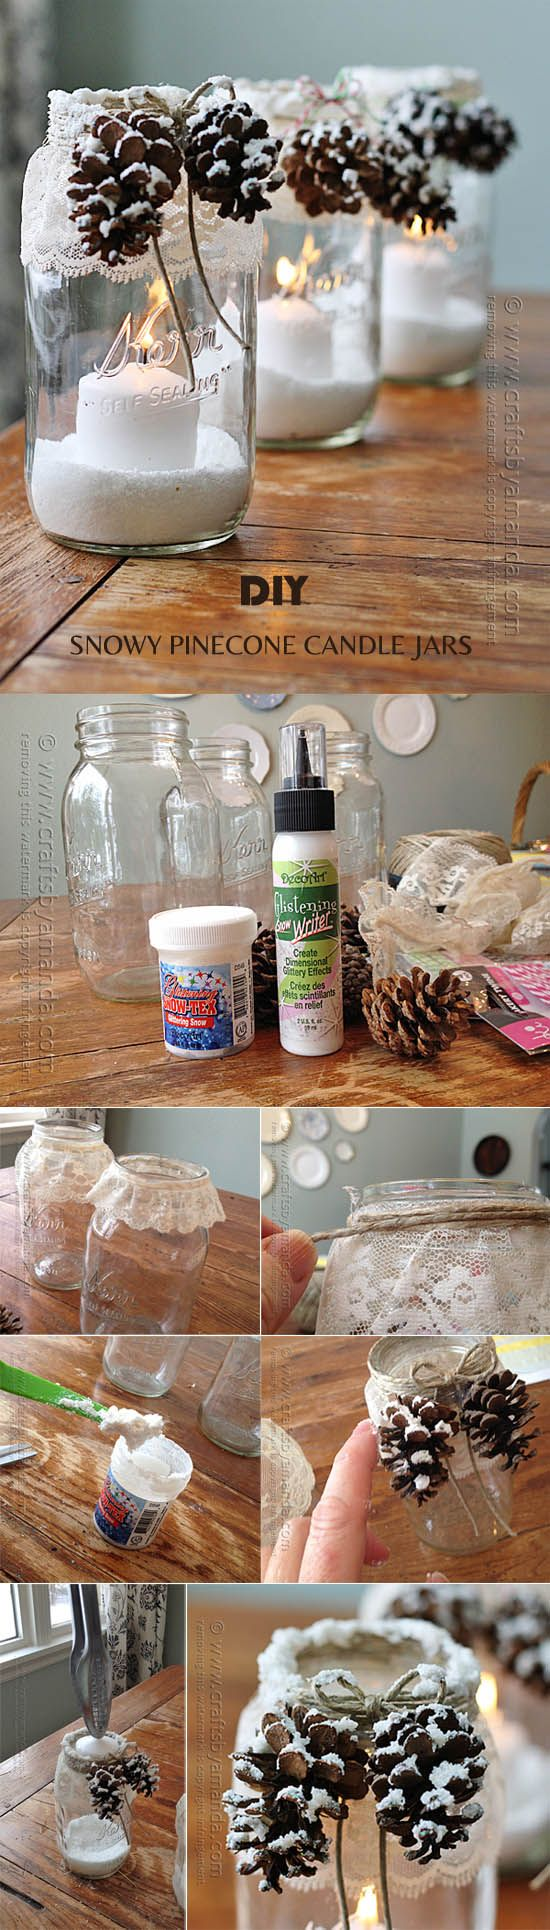 creative-DIY-snowy-pinecone-candle-jars-for-winter-weddings